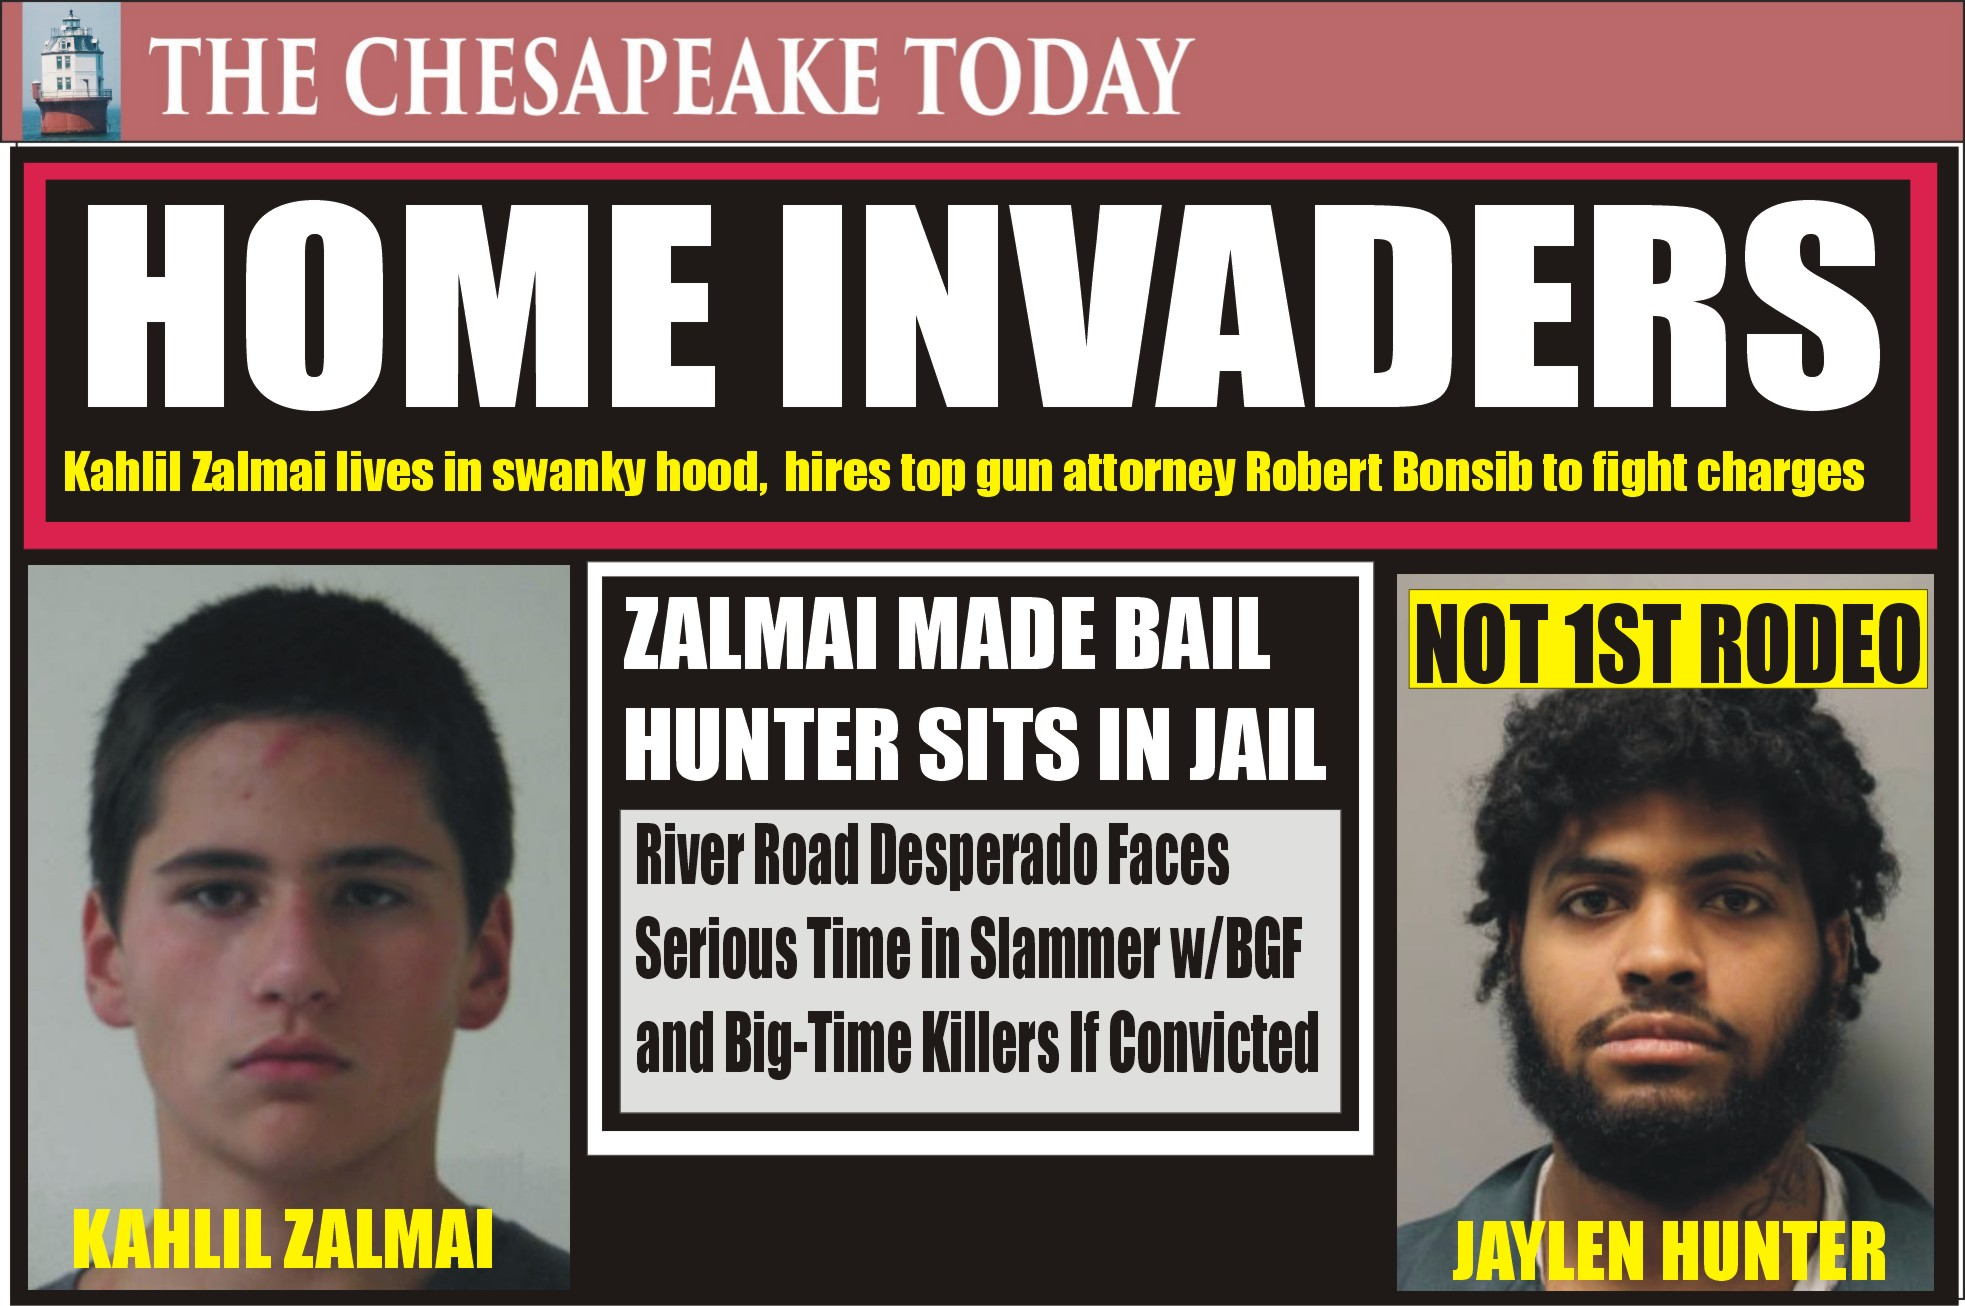 HOME INVASION: Affluent man living in great neighborhood loses his criminal cherry in alleged armed gang intrusion to a home; Khalil Zalmai hires top criminal lawyer Robert Bonsib